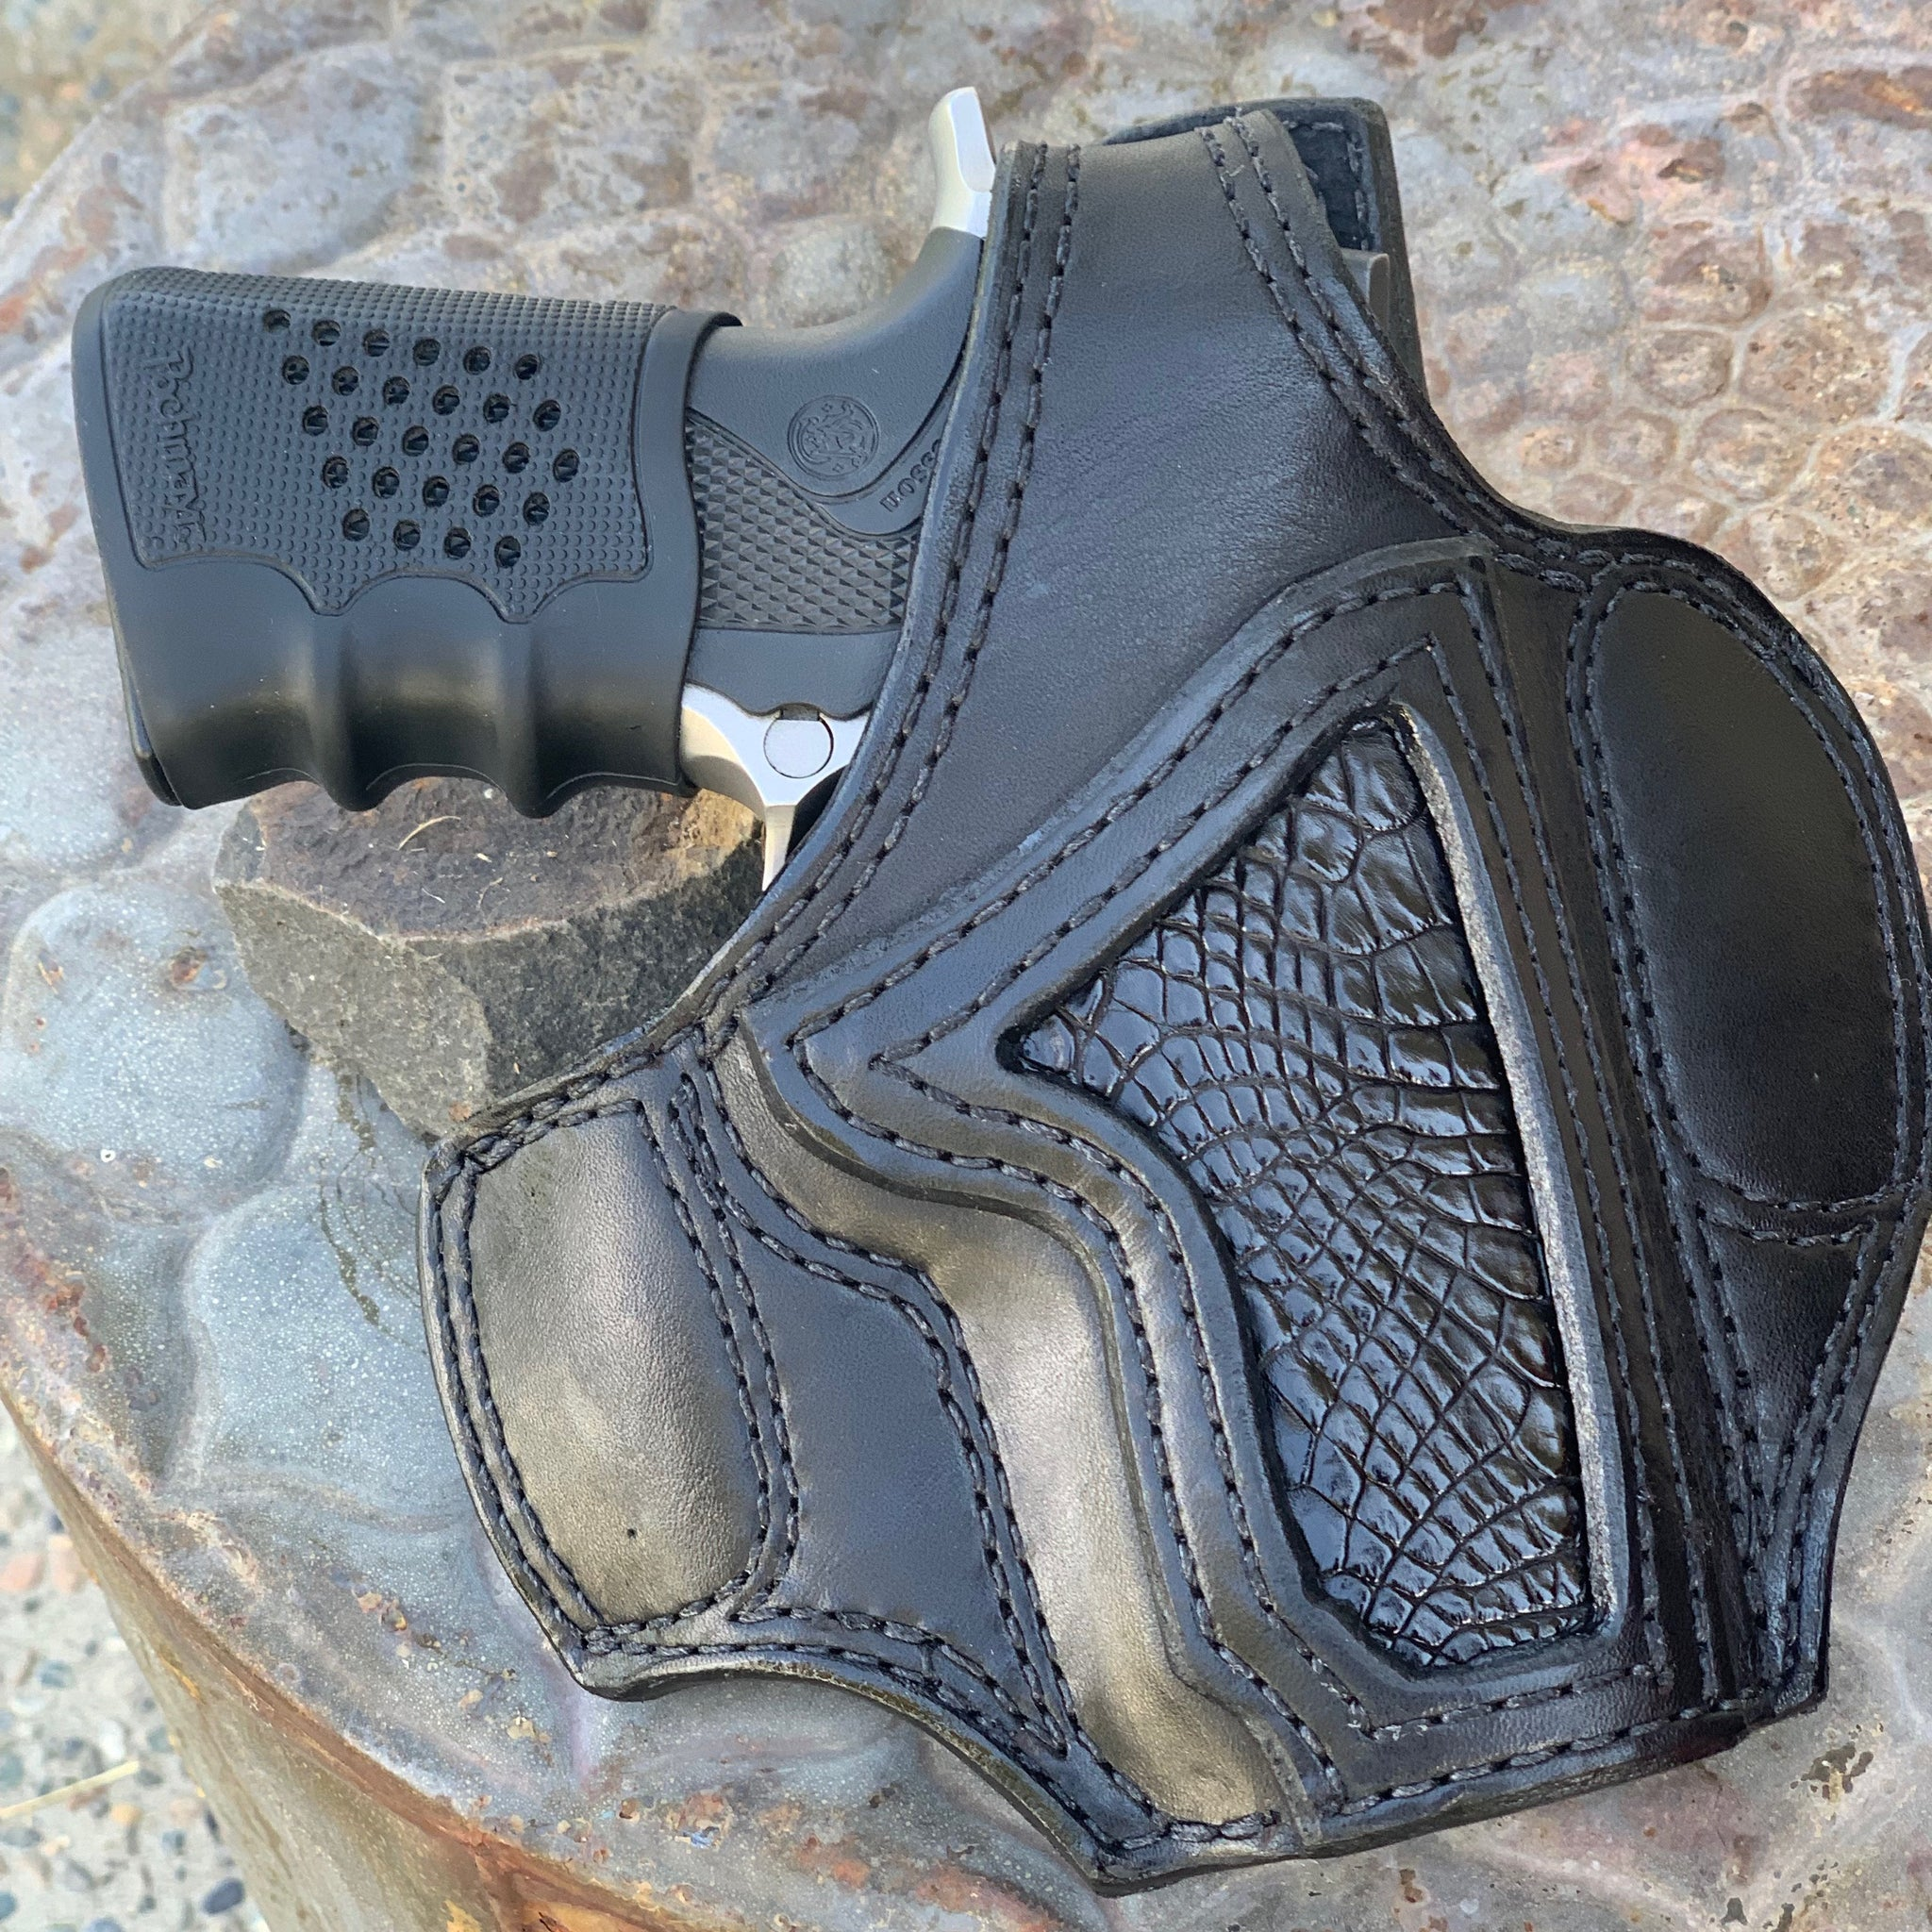 Panhandle Red Custom Handcrafted Leather Holster. Black Bridle Leather, OWB Holster for Conceal Carry..